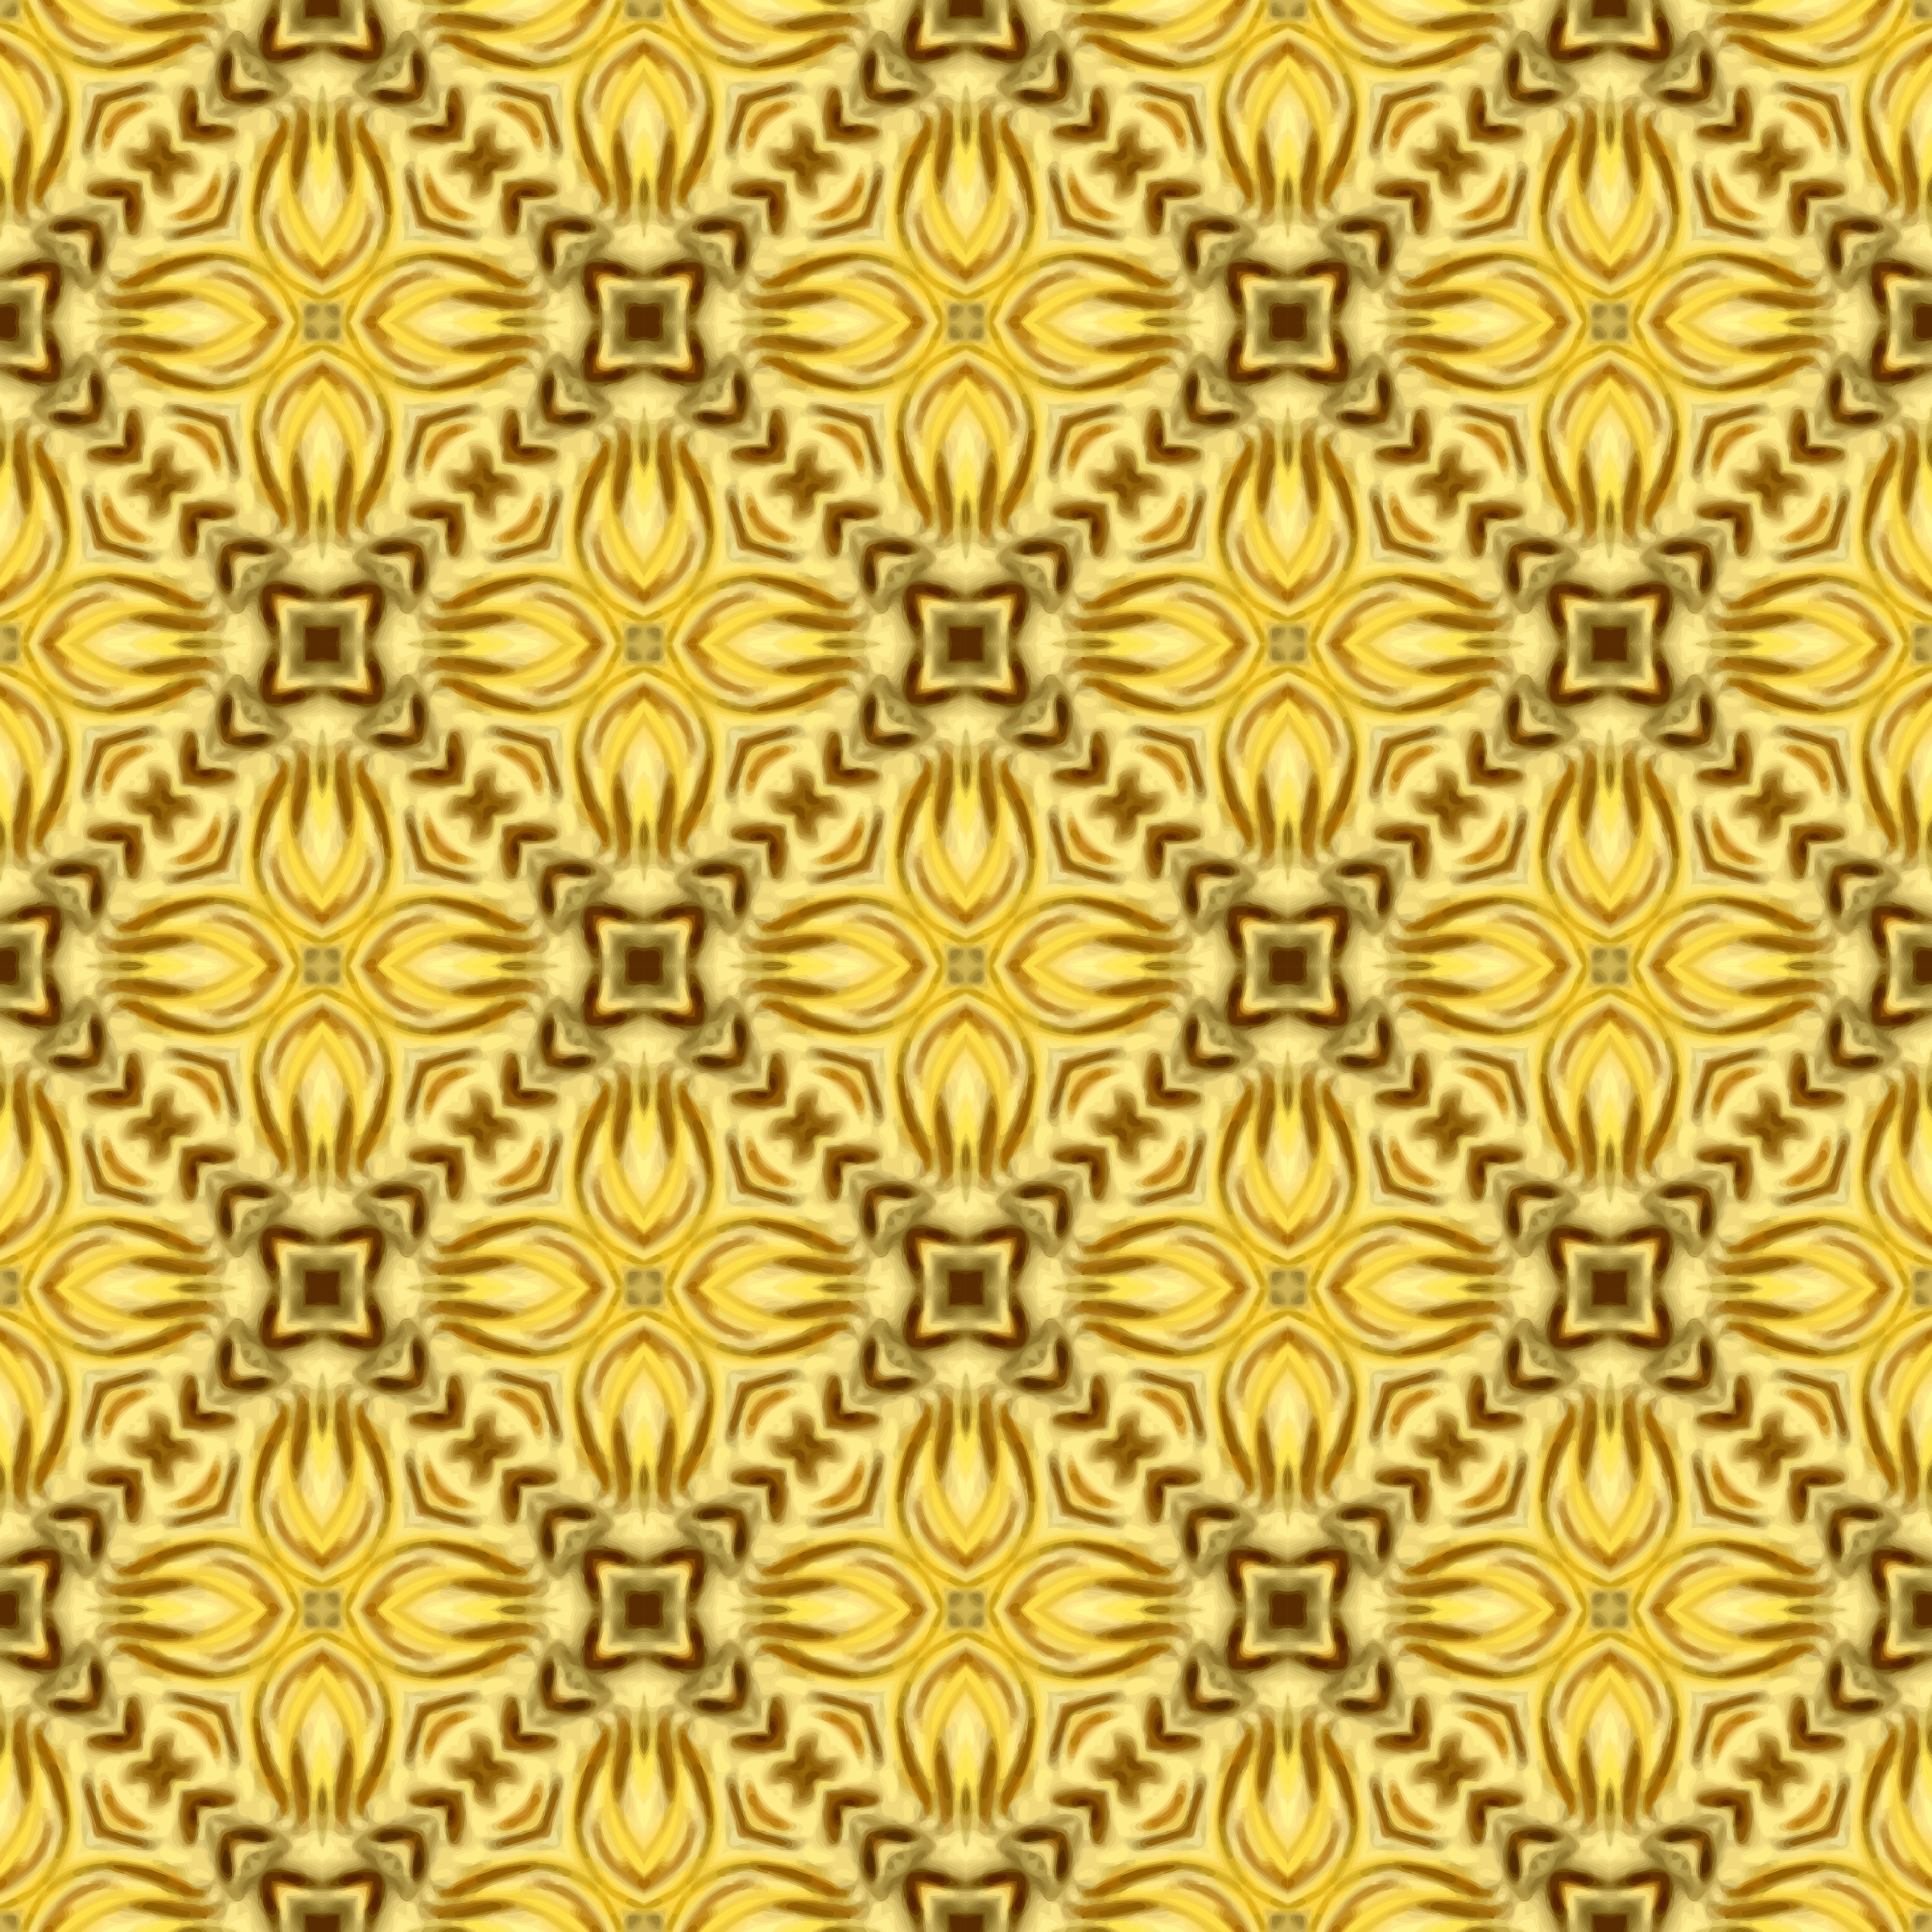 Background pattern 162 by Firkin